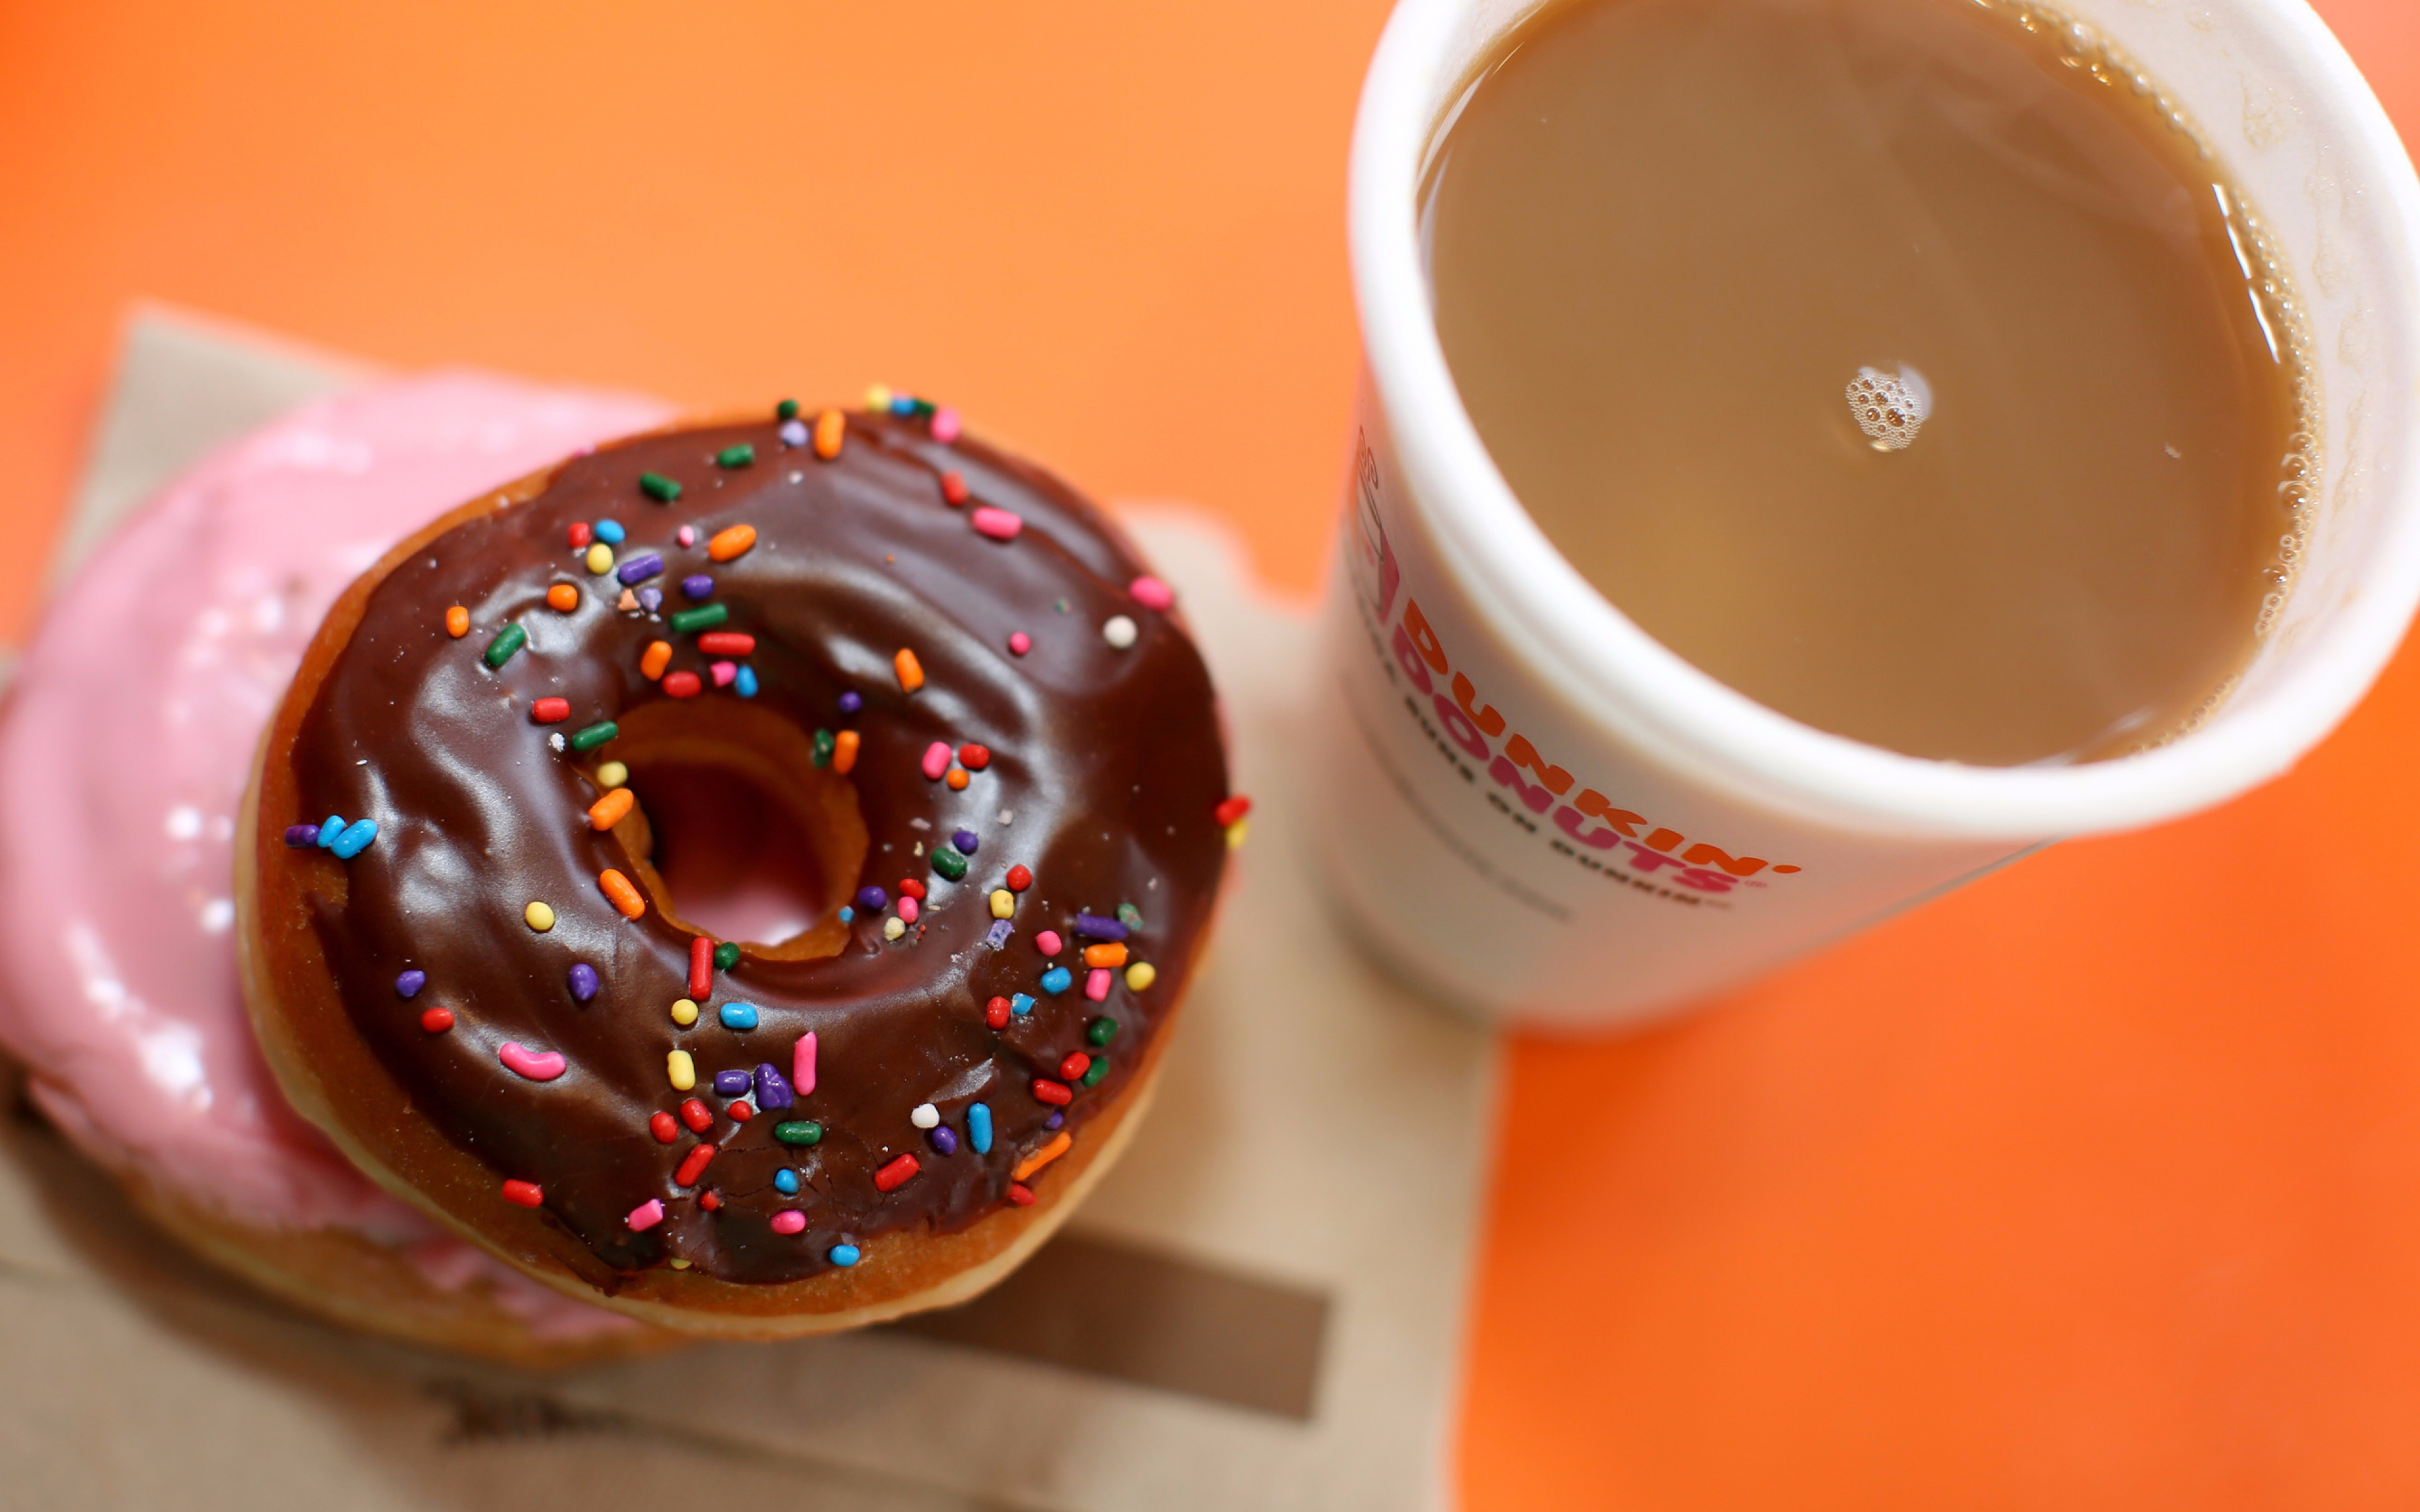 dunkin donuts, donuts, coffee